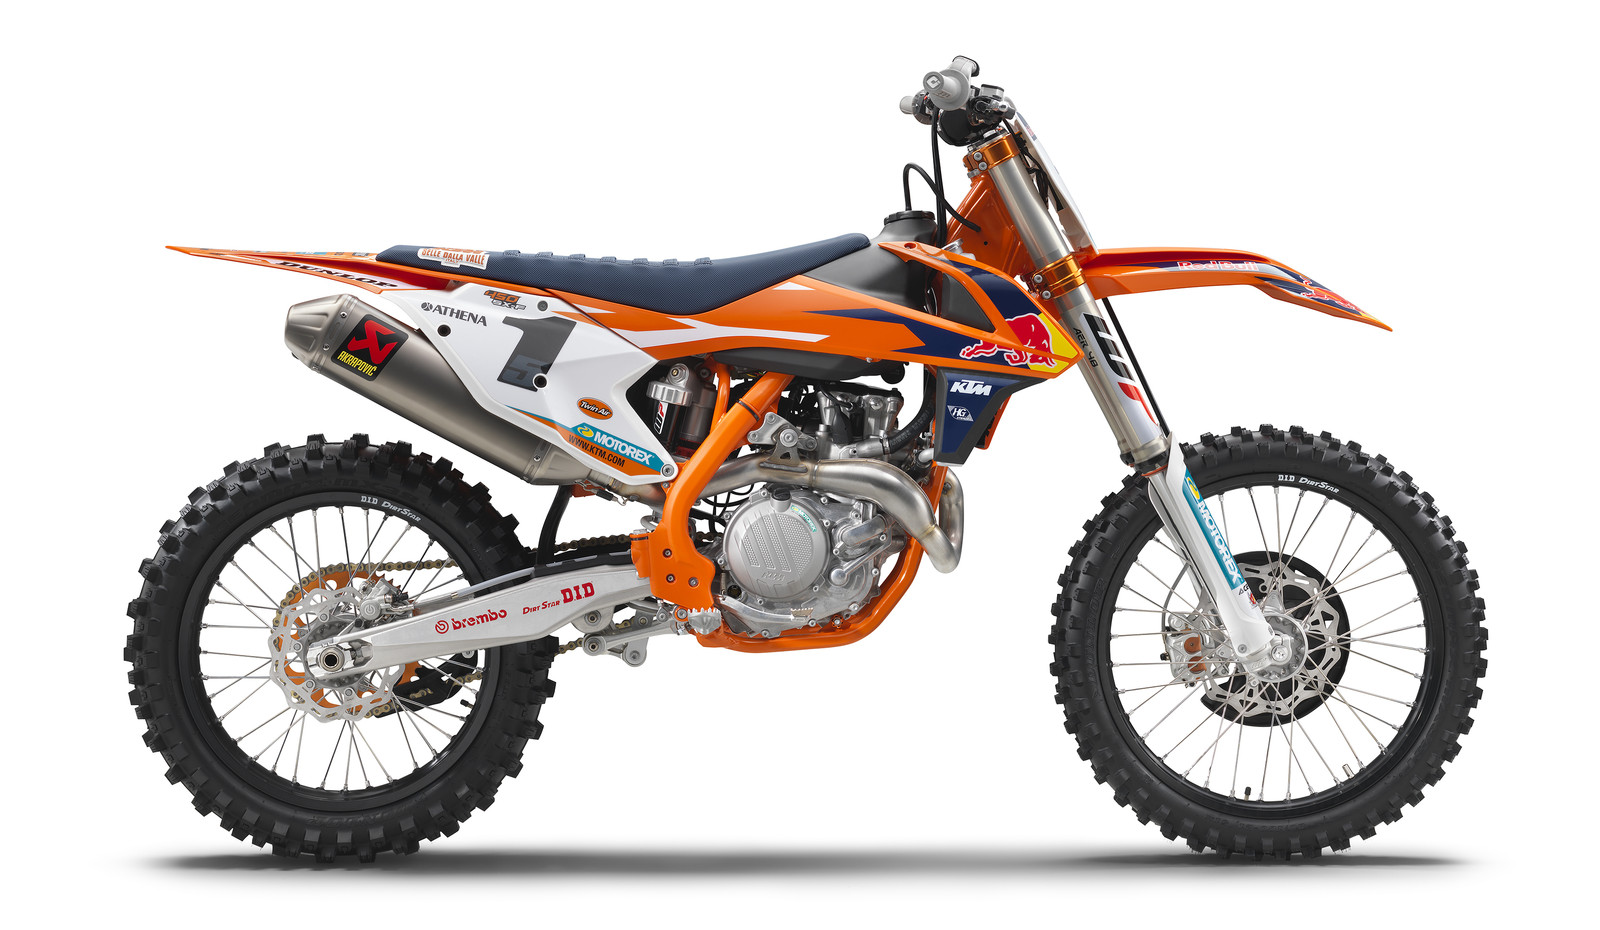 2017 KTM 450 SX-F FACTORY EDITION  - First Look: 2017 KTM Factory Edition 450 SX-F & 250 SX-F - Motocross Pictures - Vital MX